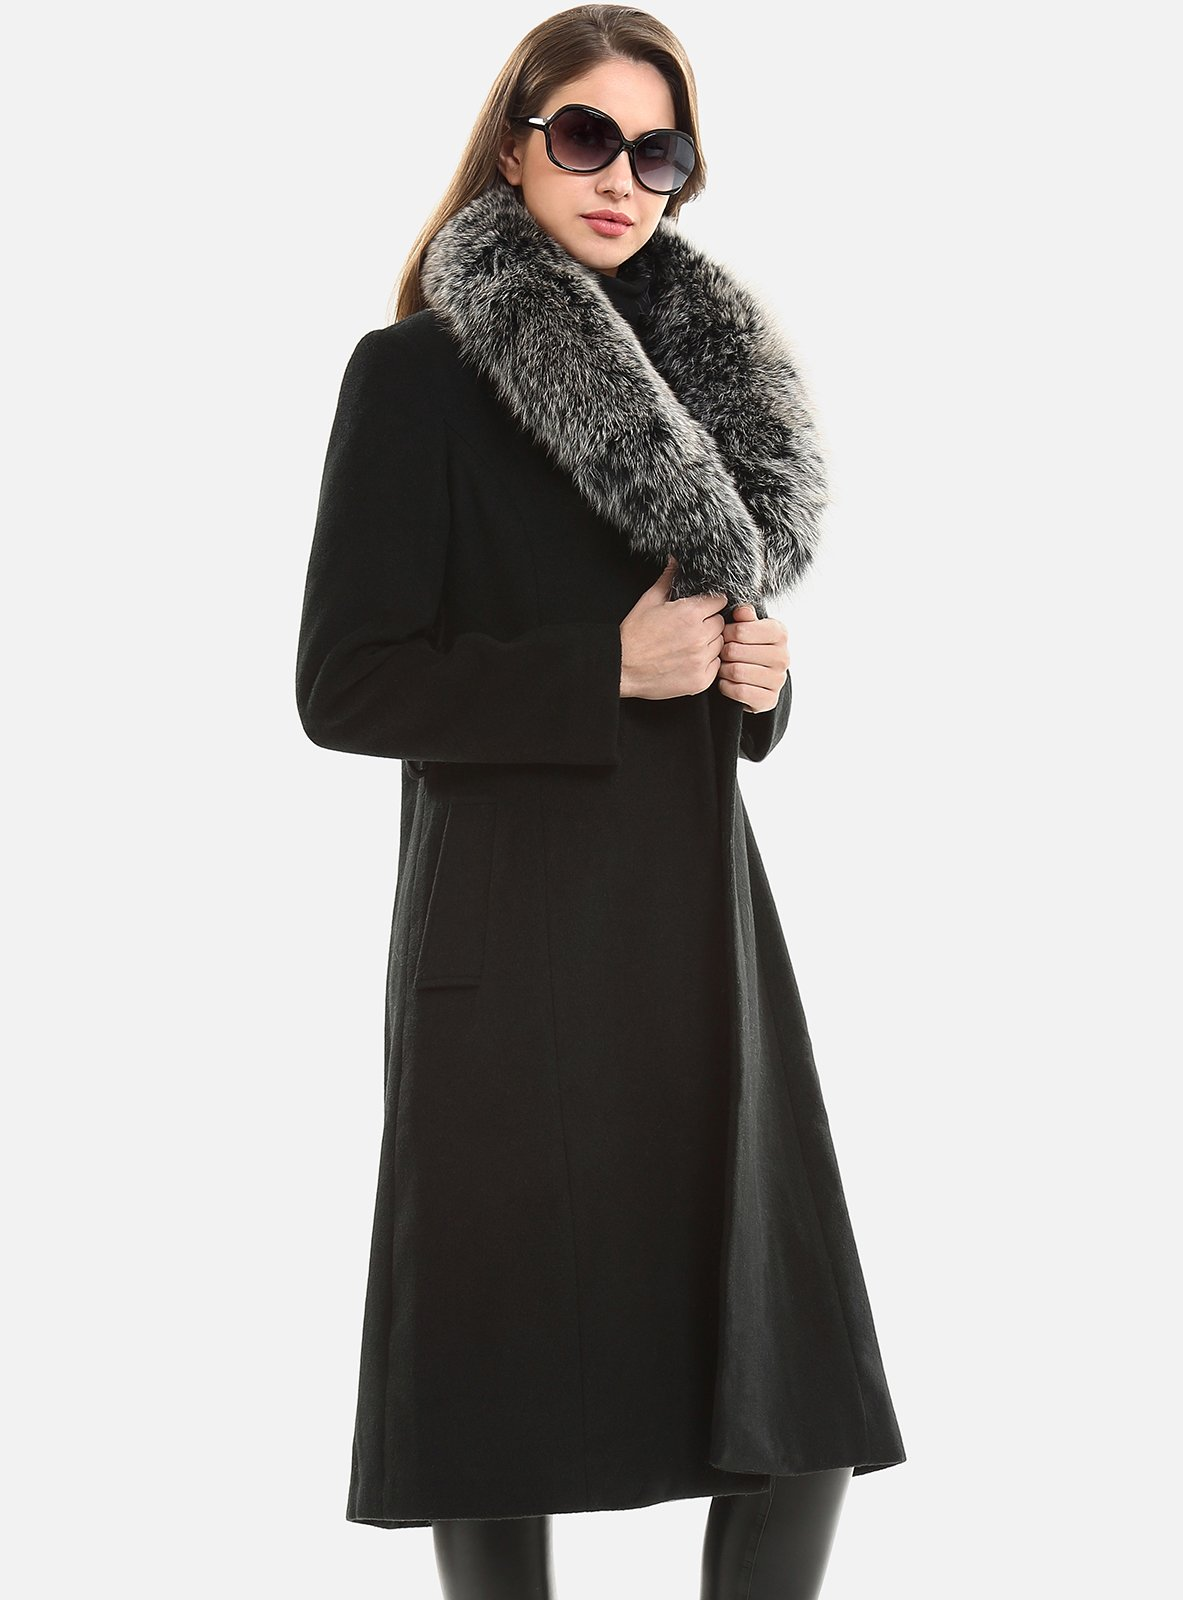 Escalier Women`s Wool Trench Belt Long Coat with Fur Collar Black 4XL by Escalier (Image #4)